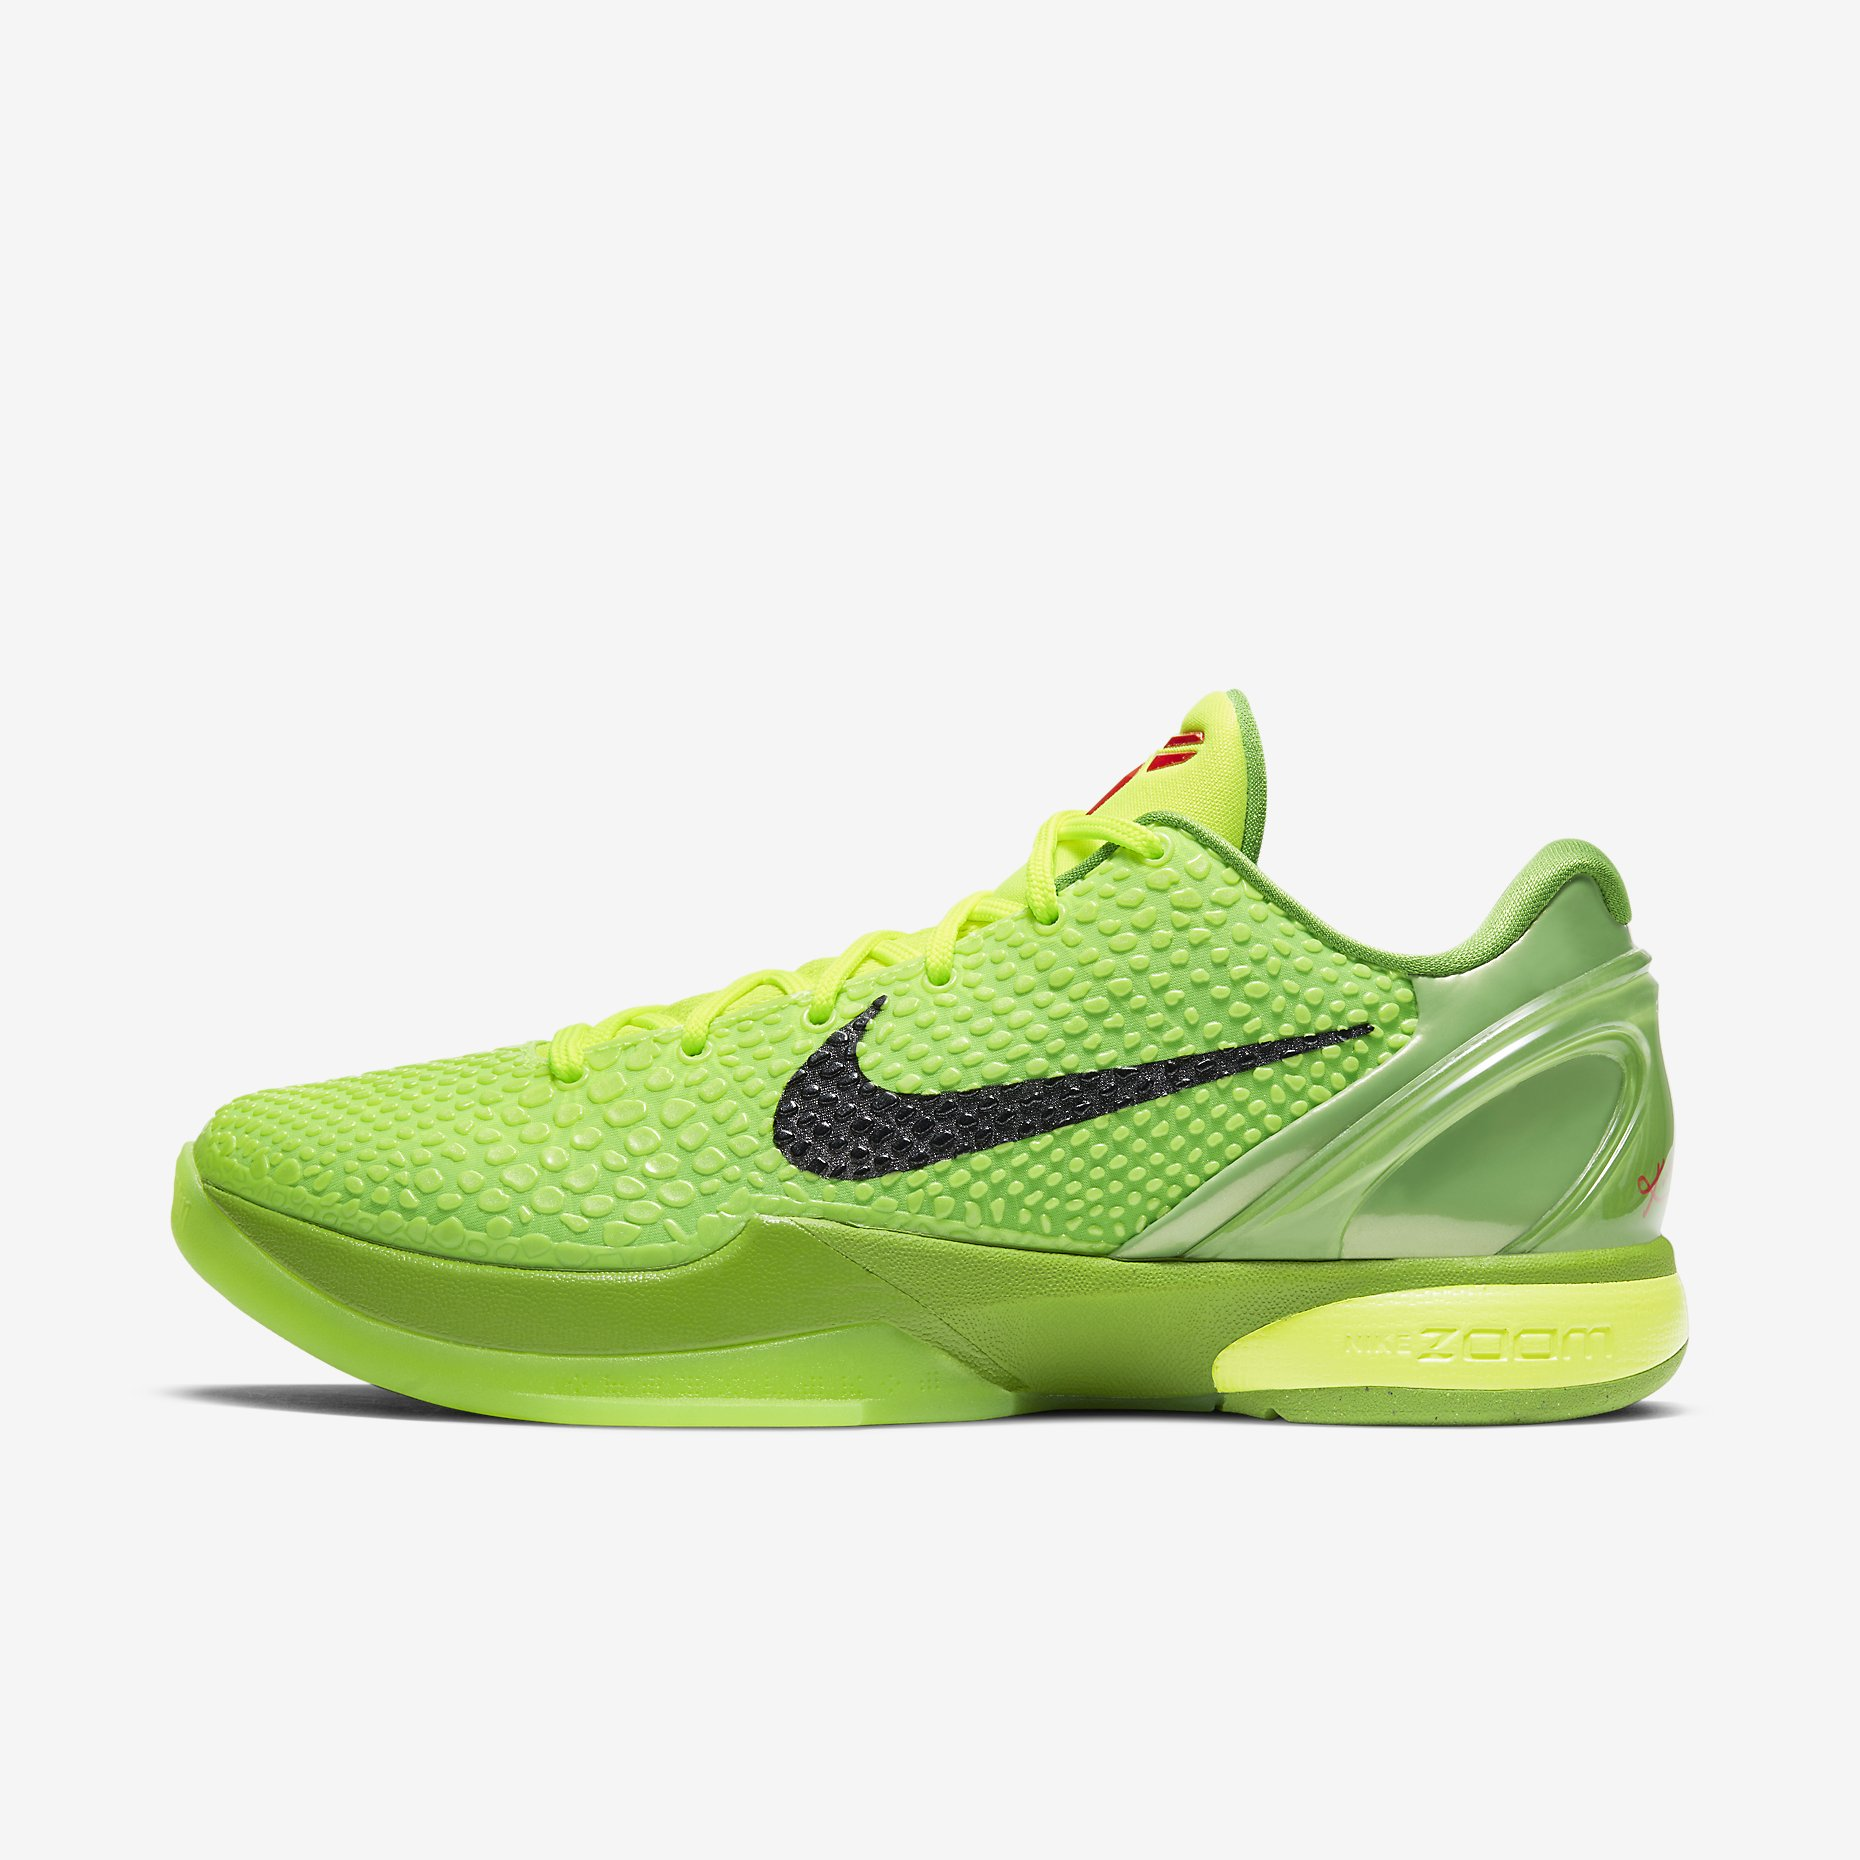 Nike Kobe 6 Protro 'Green Apple' - 'Grinch'}